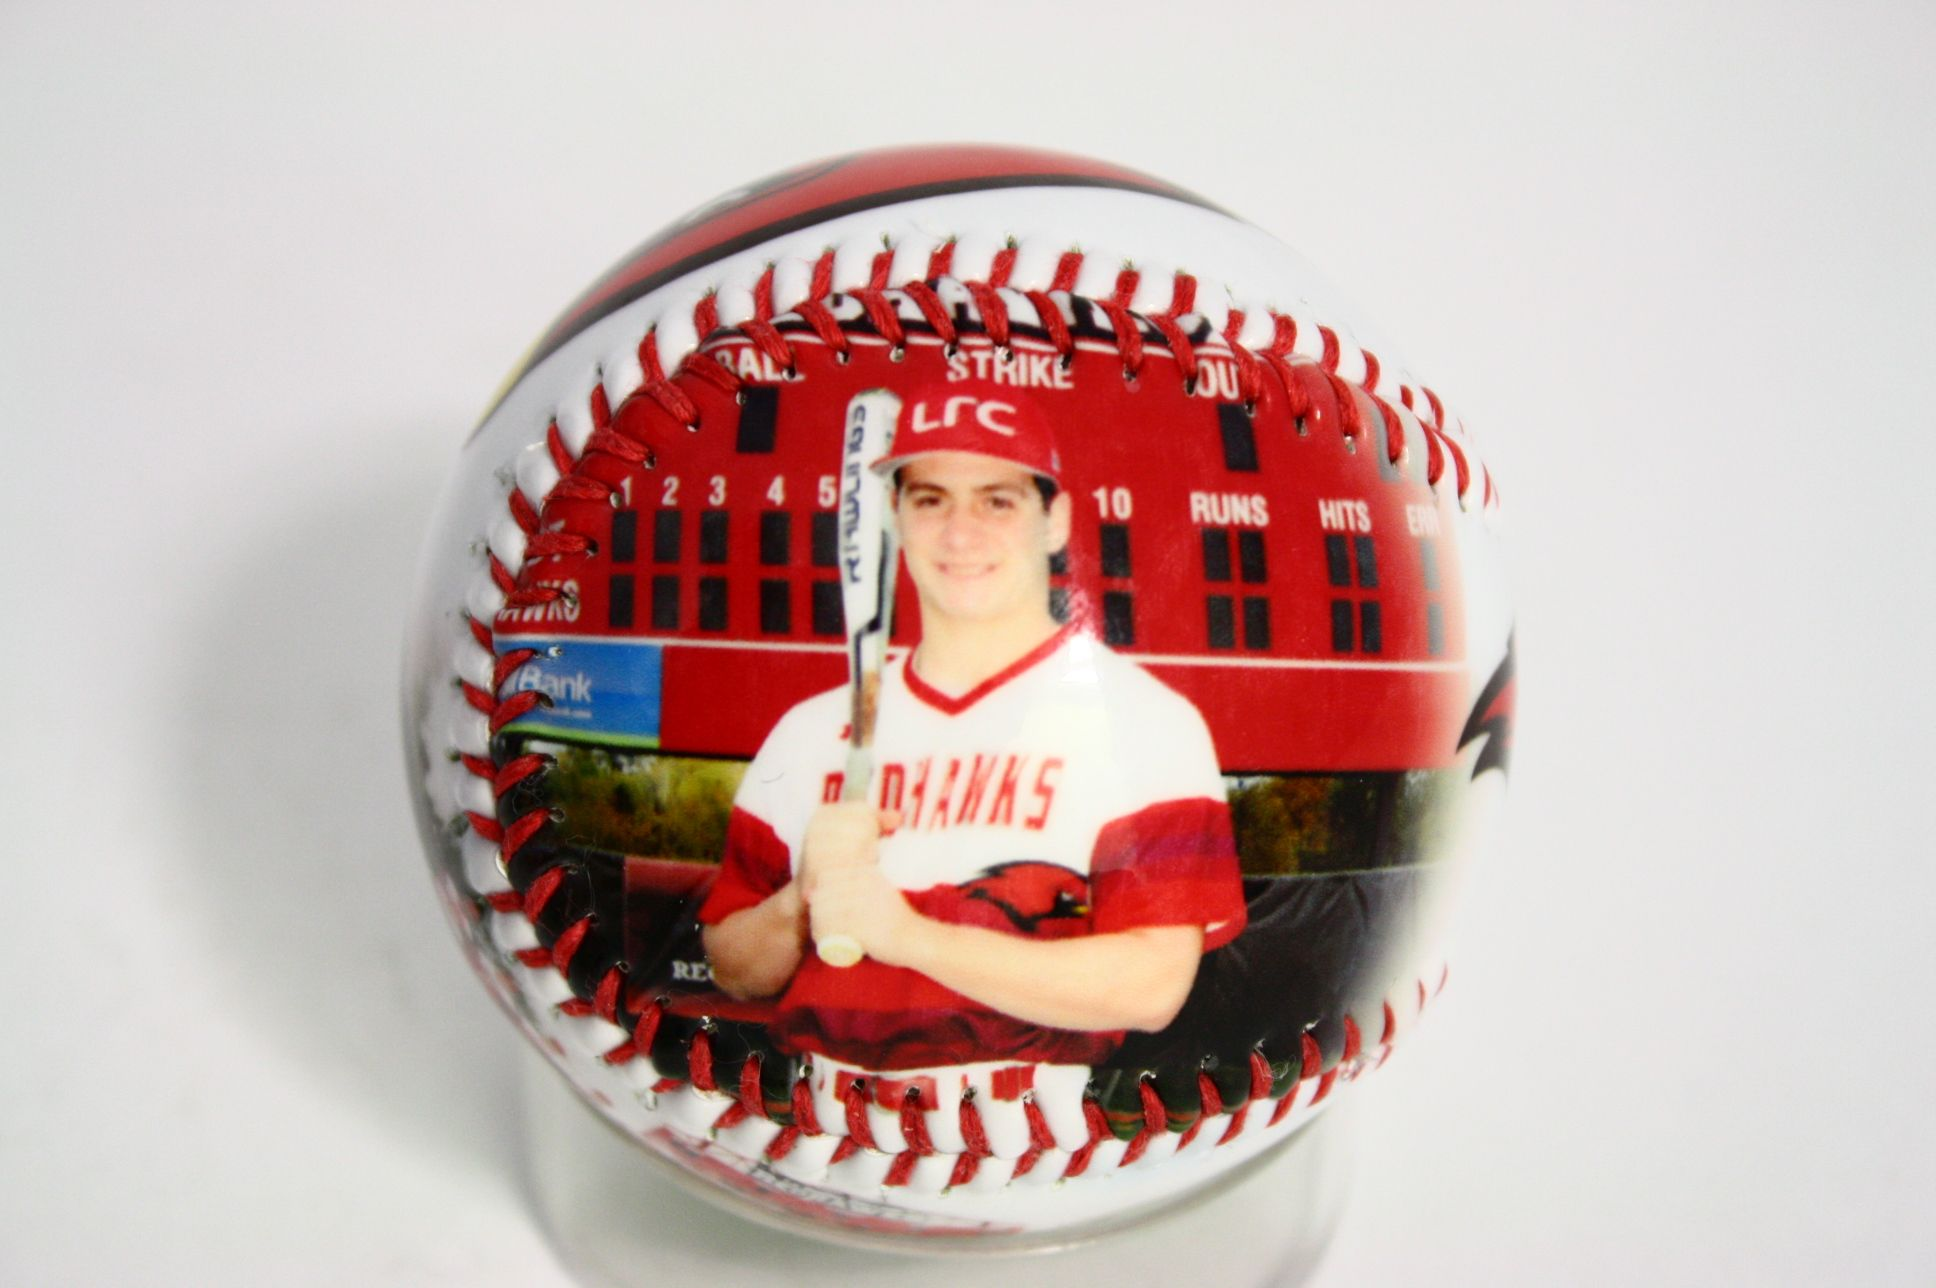 Unique gift for your favorite baseball player this year for his birthday, graduation, senior night, anniversary or any other occasions. Design your own customized baseball today